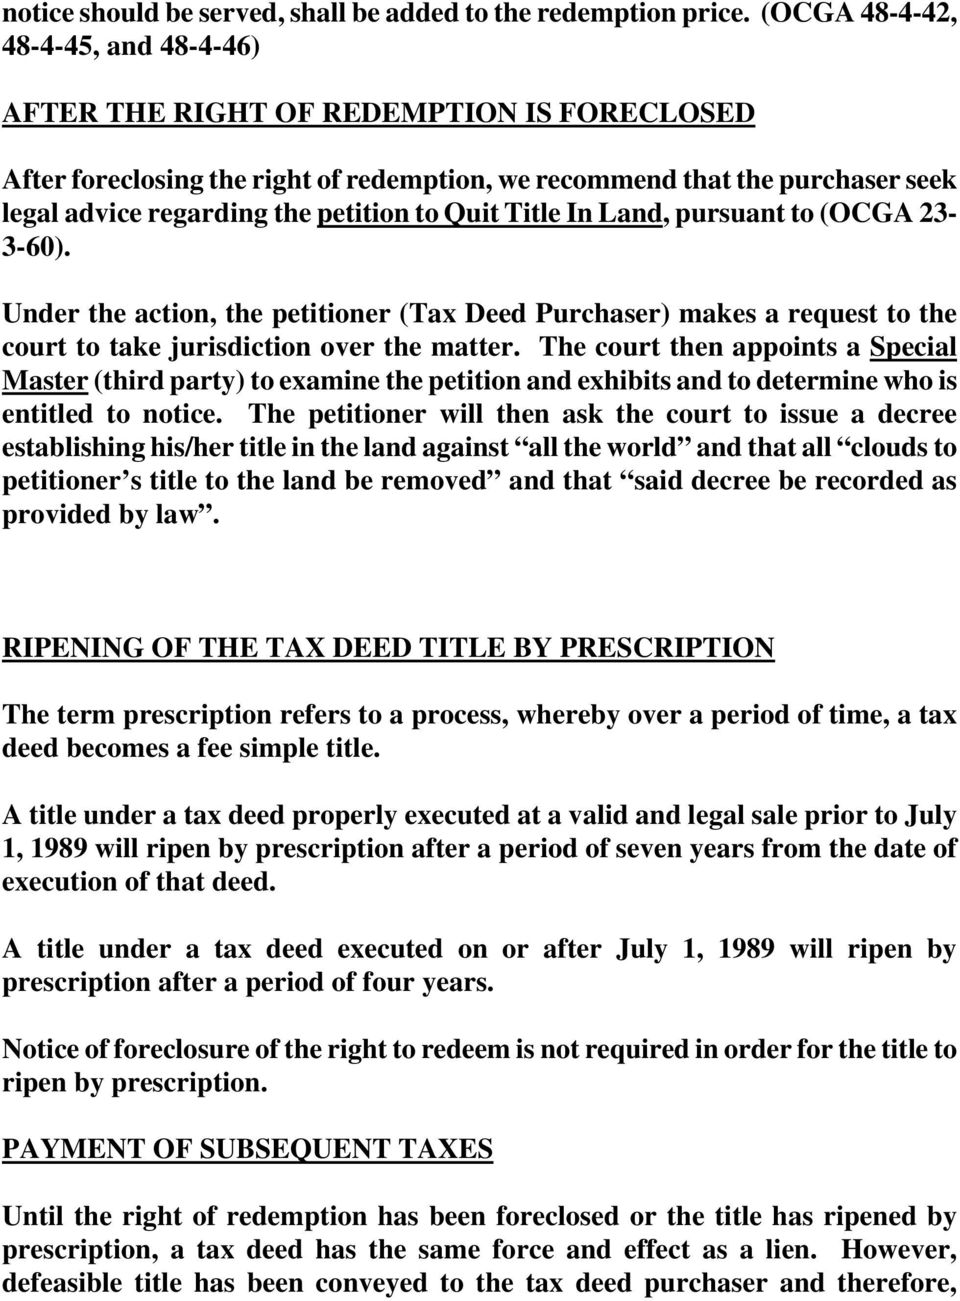 Quit Title In Land, pursuant to (OCGA 23-3-60). Under the action, the petitioner (Tax Deed Purchaser) makes a request to the court to take jurisdiction over the matter.